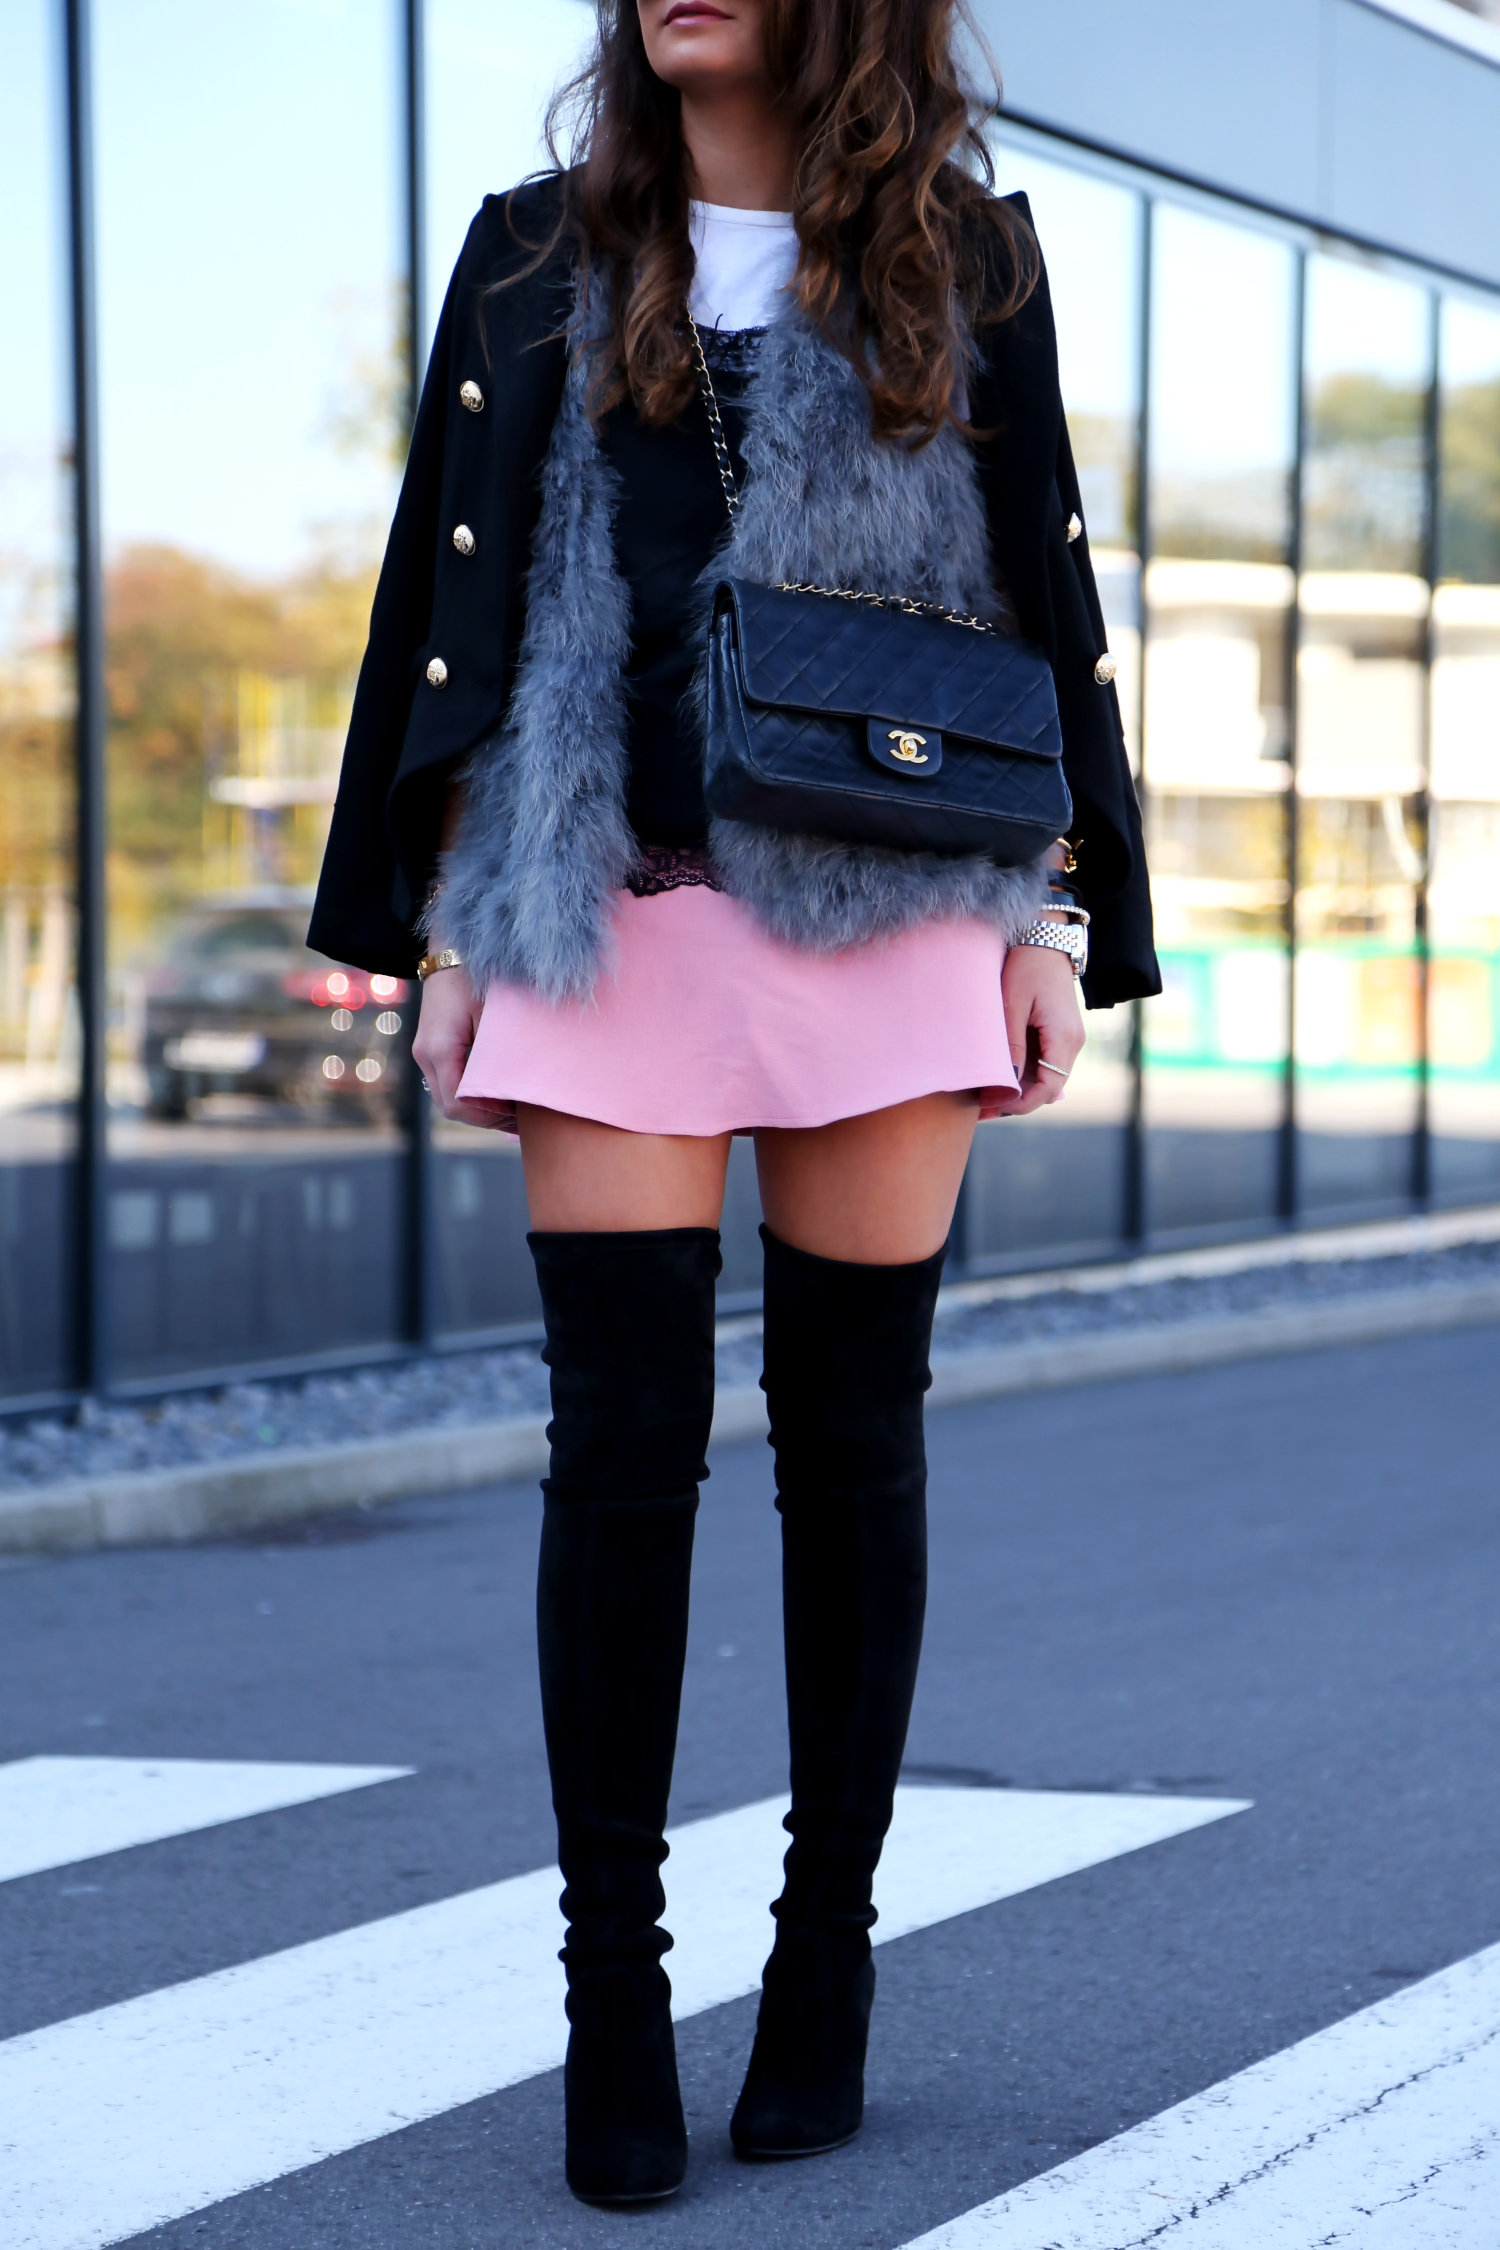 outfit-details-fall-autmn-look